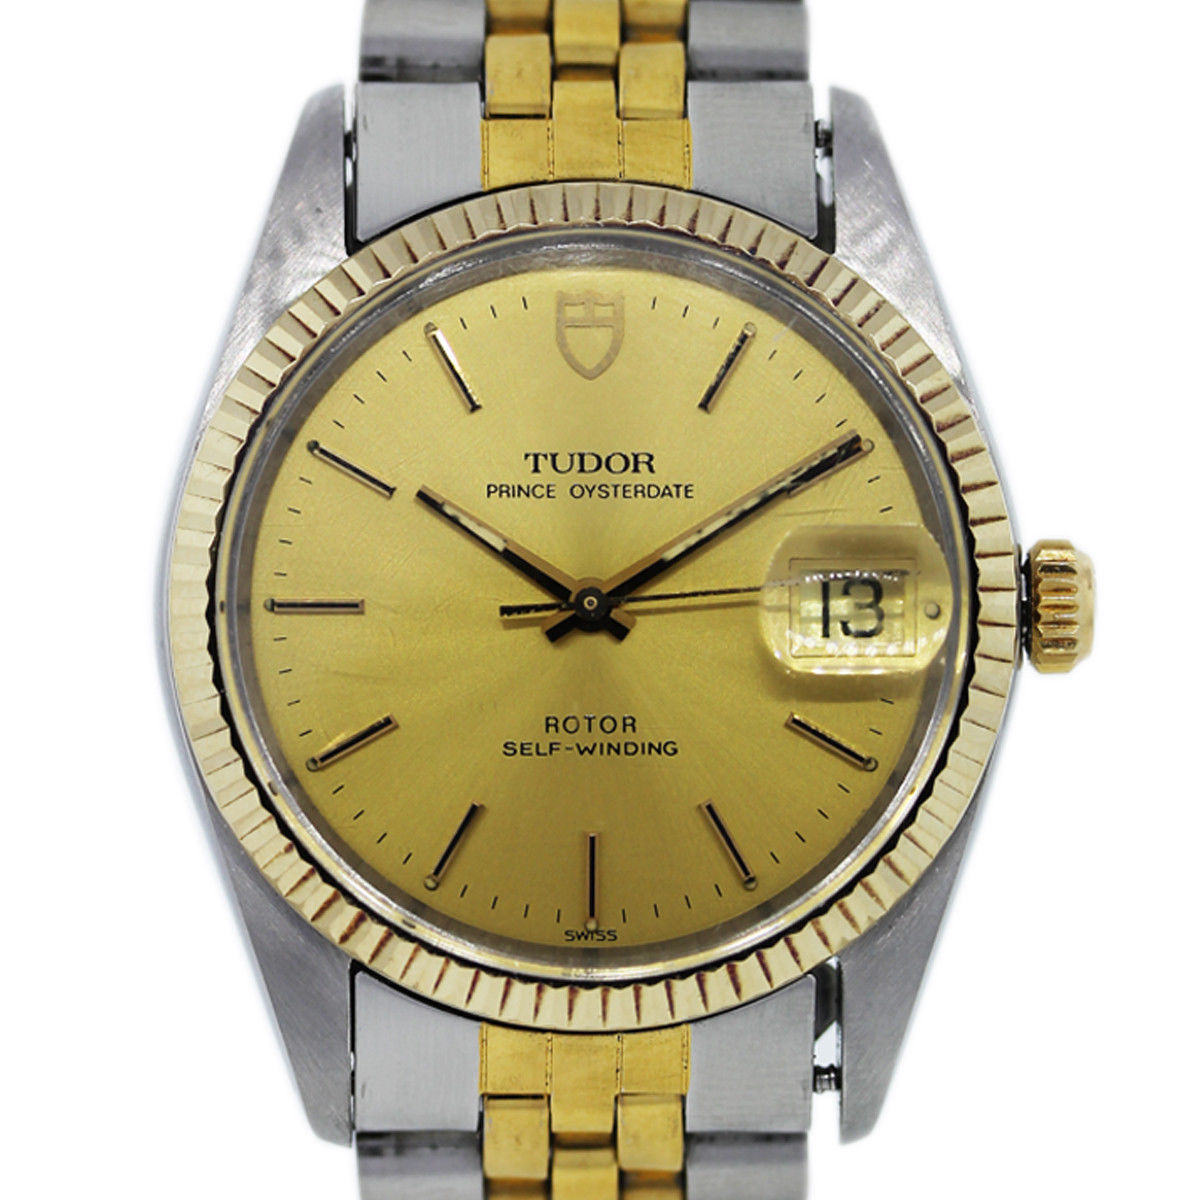 dating rolex tudor watches Tudor oyster prince date+day 7017/0 produced from 1969 onwards, the oyster prince date+day is one of the largest tudor watches in the prince line the example of reference 7017/0 shown here has a 375 mm steel case.